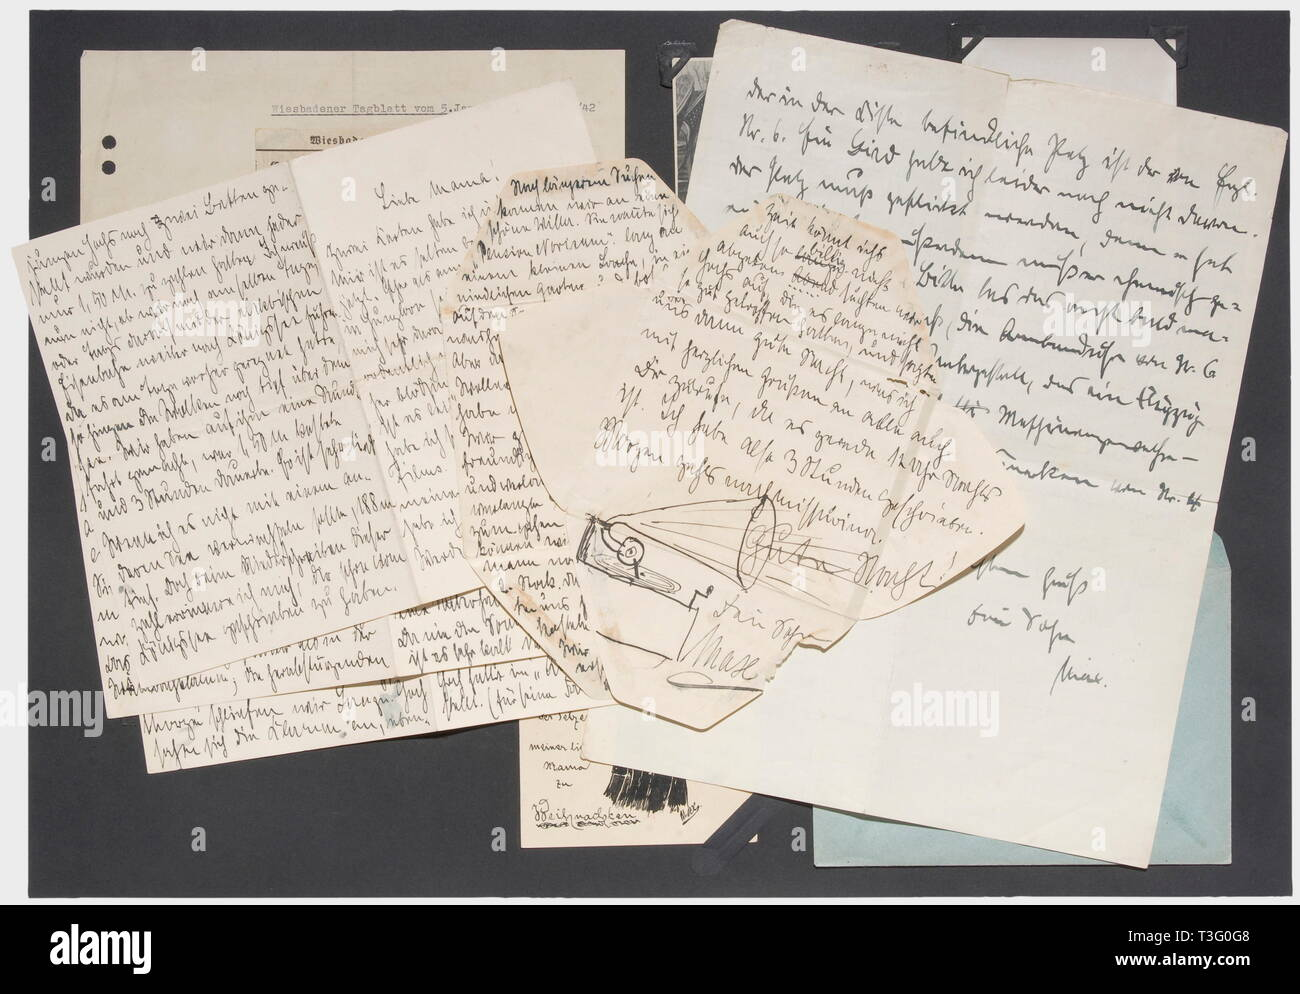 "First Lieutenant Max Immelmann (1890 - 1916), a letter to his mother, probably late 1915 Obviously written hastily in ink on chequered paper, short replies and a few questions answering some previous correspondence (""Well, at least I have finally answered the postcards""/""Many, many warm greetings from your son Max""). On the back ""The fur coat in the chest is from Englishman no. 6."" ... The fur needs repair. ... Also the compass, the wristwatch from no. 6, a radio button on the undercarriage ... of no. 4, machine gun lock of no. 3. Identi historic, Additional-Rights-Clearance-Info-Not-Available Stock Photo"